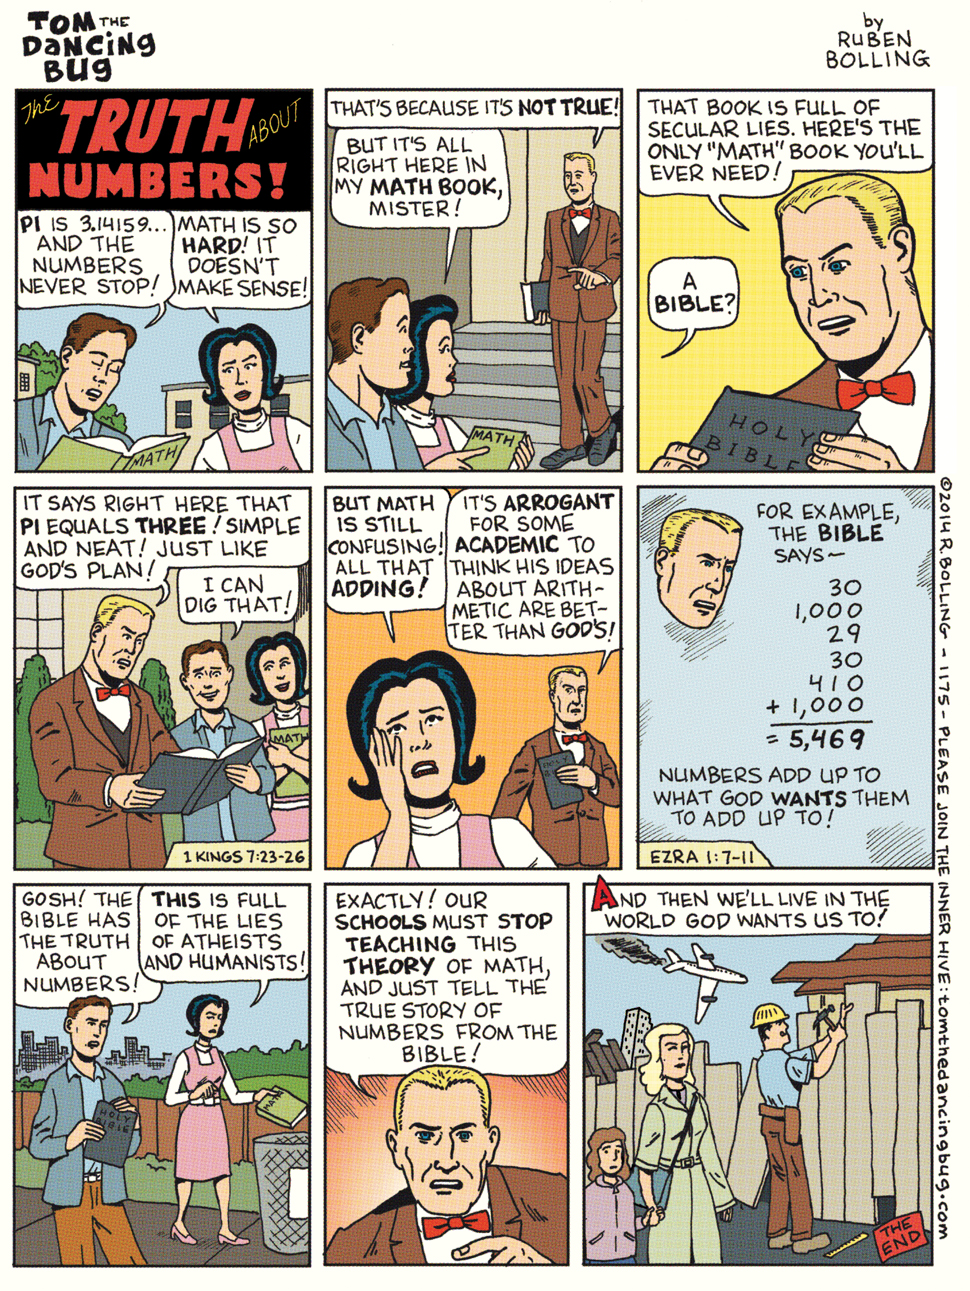 http://media.boingboing.net/wp-content/uploads/2014/02/1175cbCOMIC-bible-math.jpg